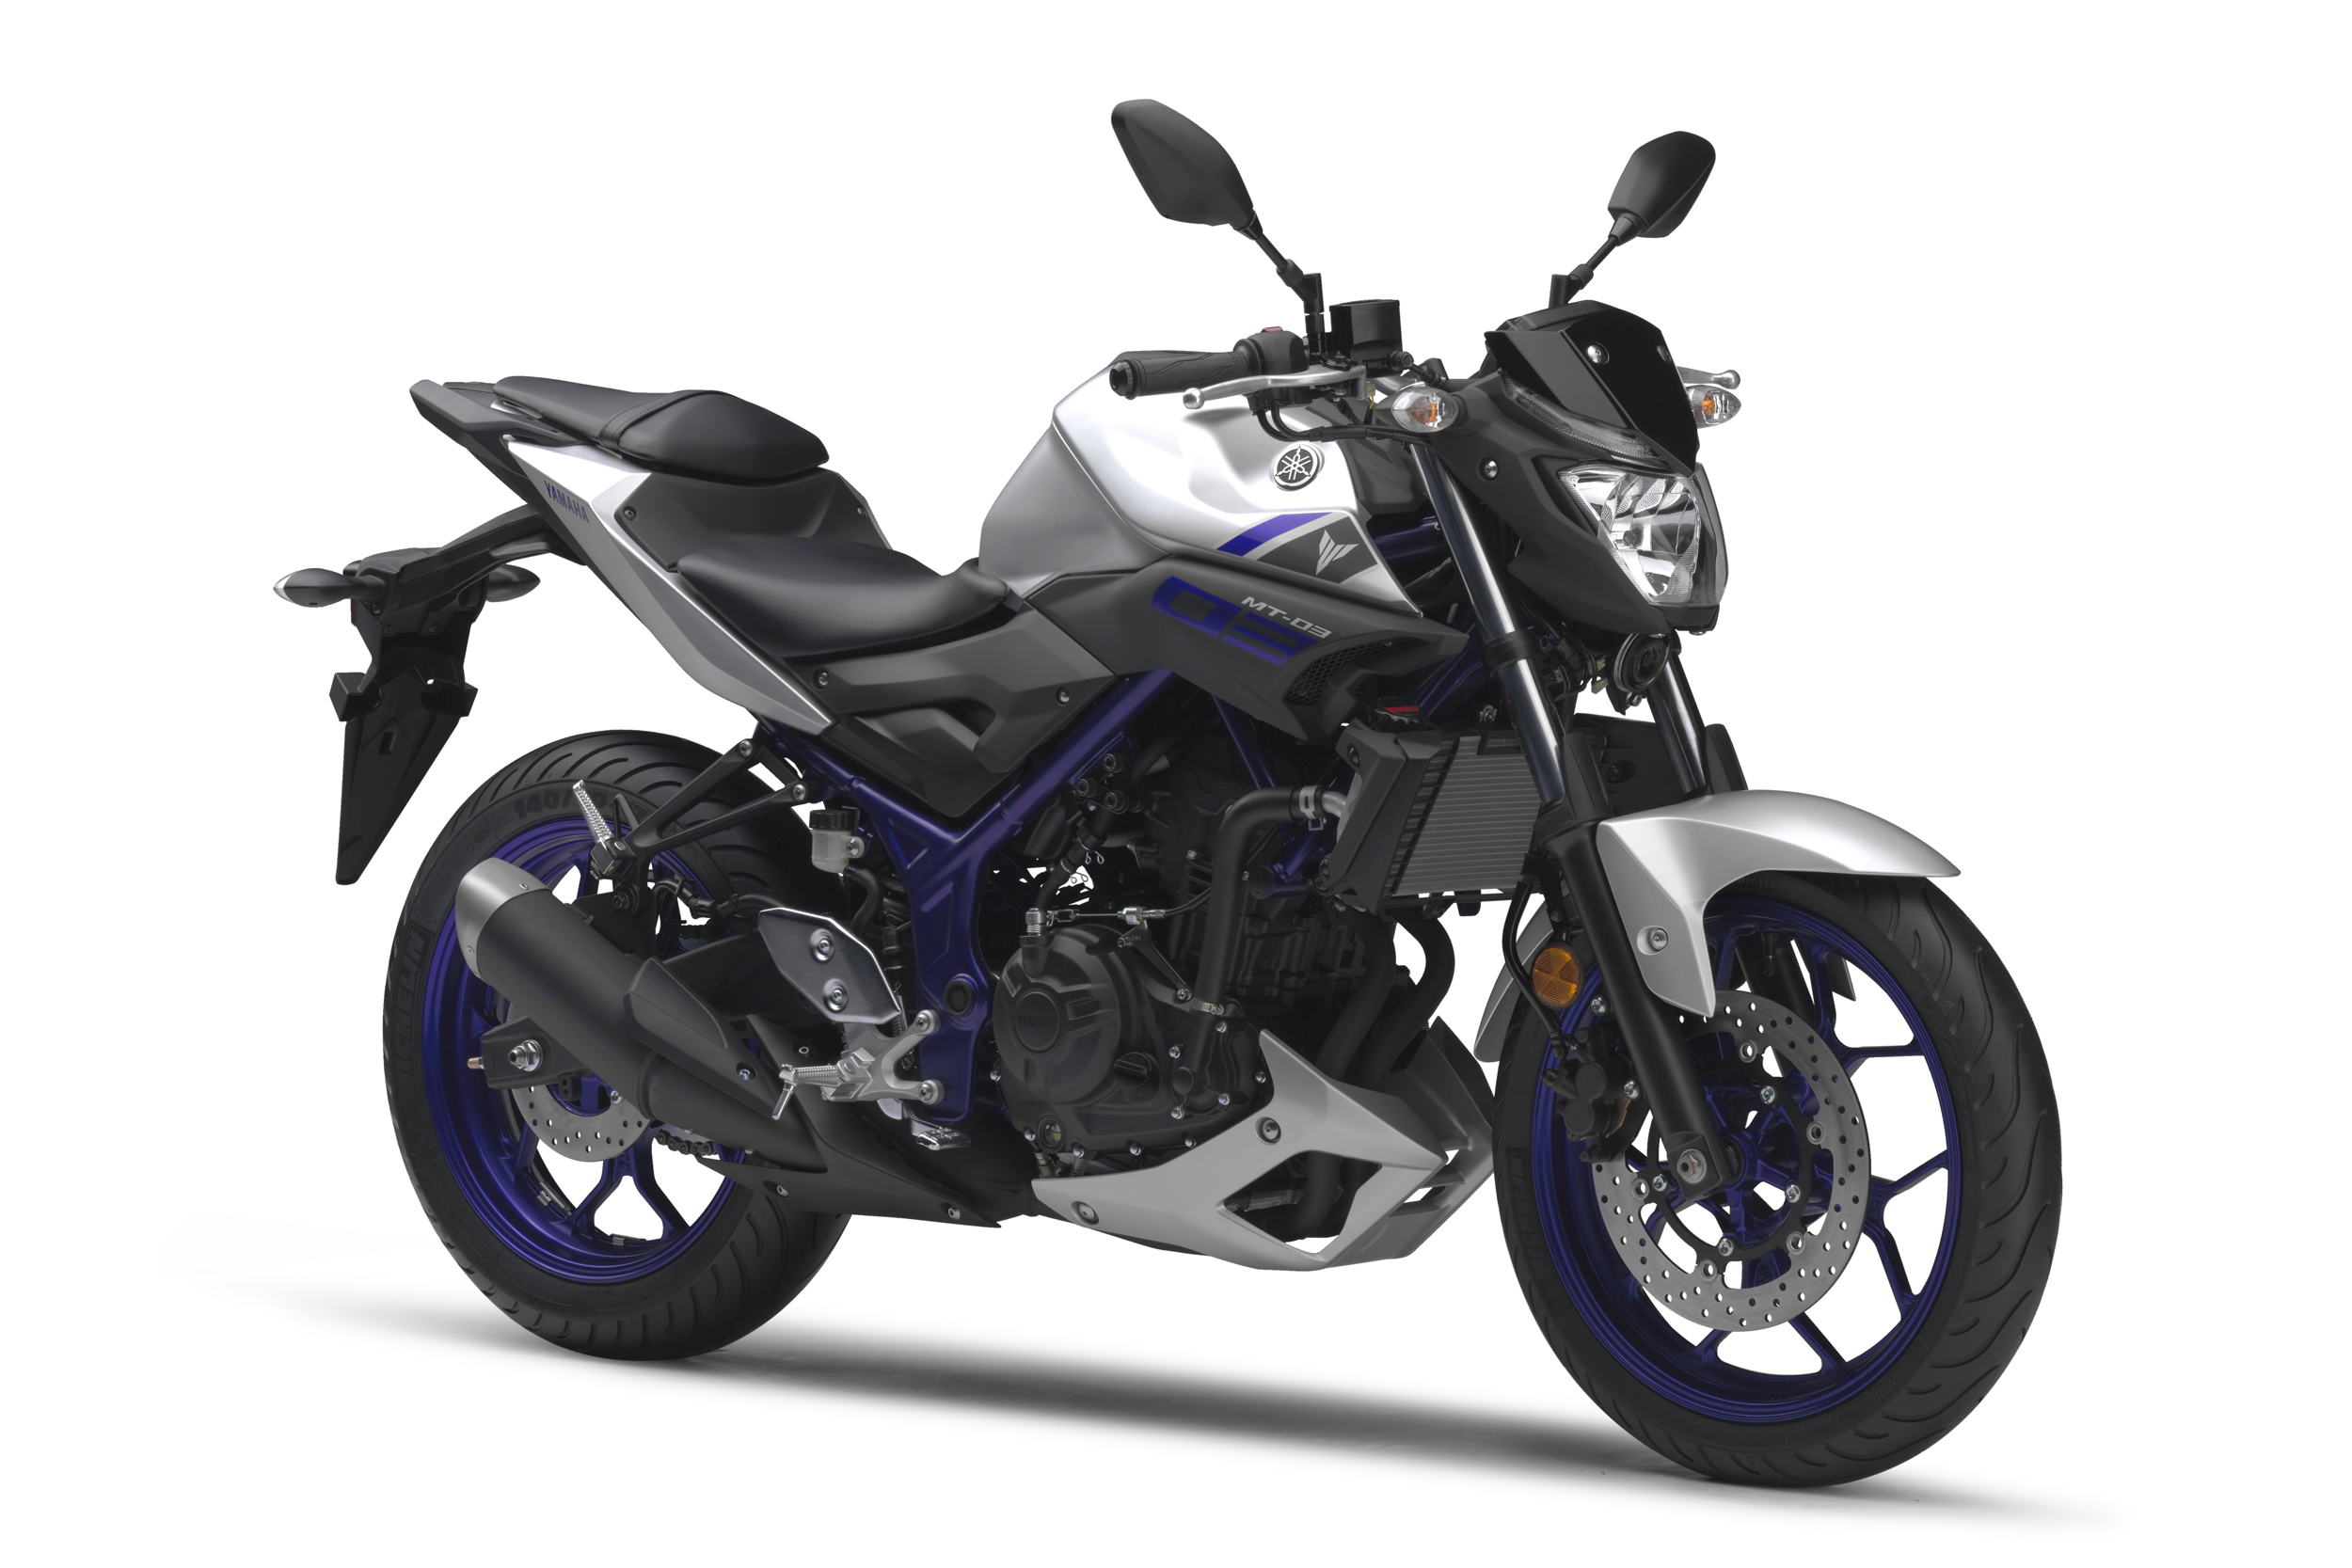 Yamaha MT-03 being evaluated for Europe